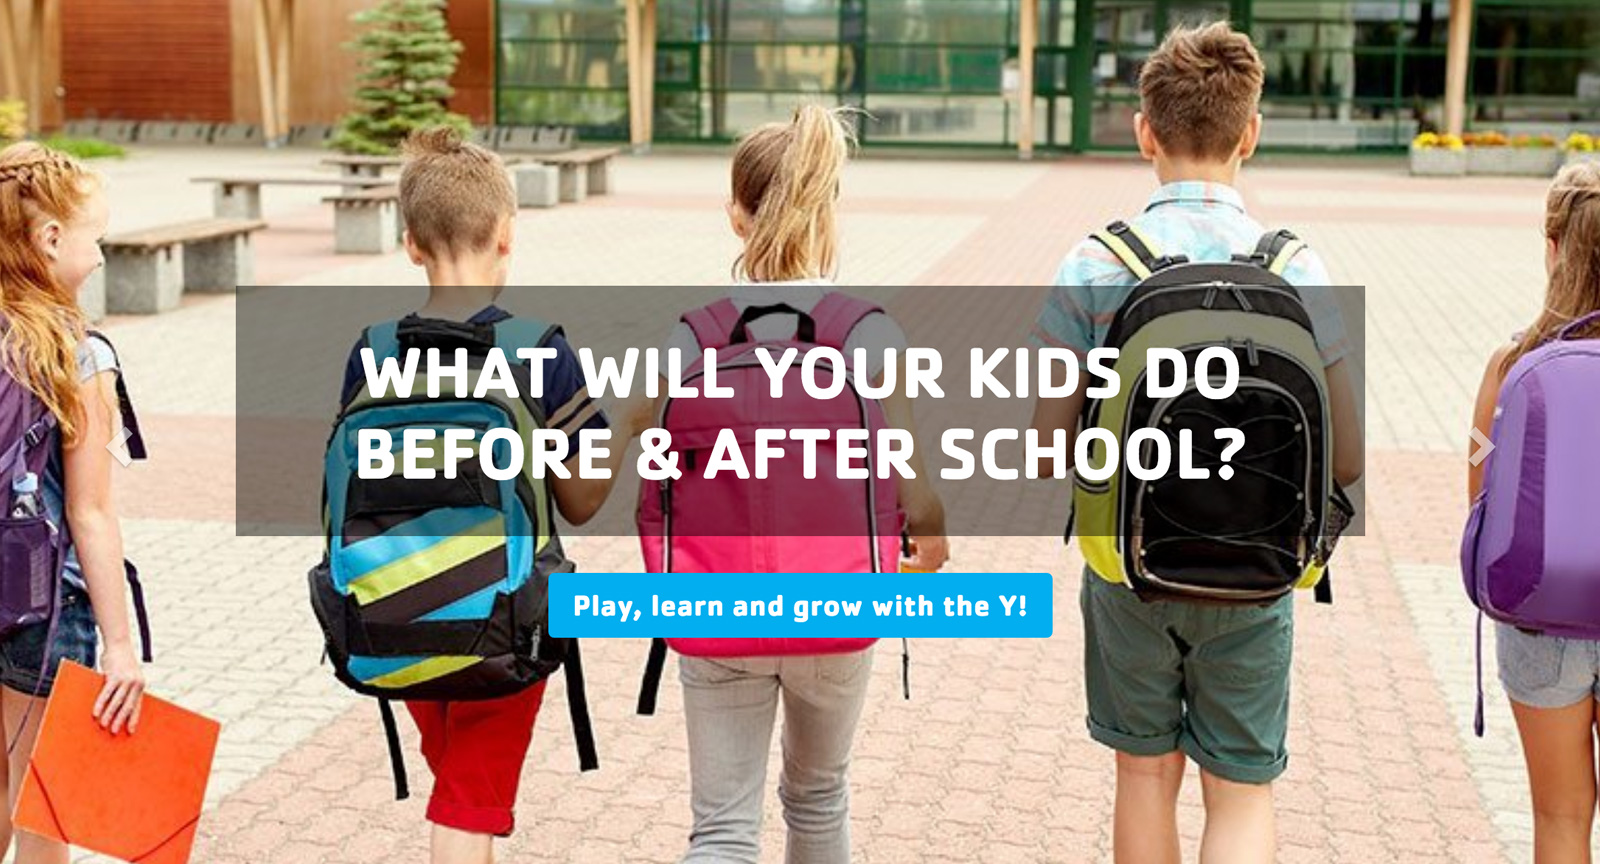 The Indianapolis YMCA uses efficacious copy and a relatable photo to convince parents to enroll their children in the organization's before- and after-school care programs.